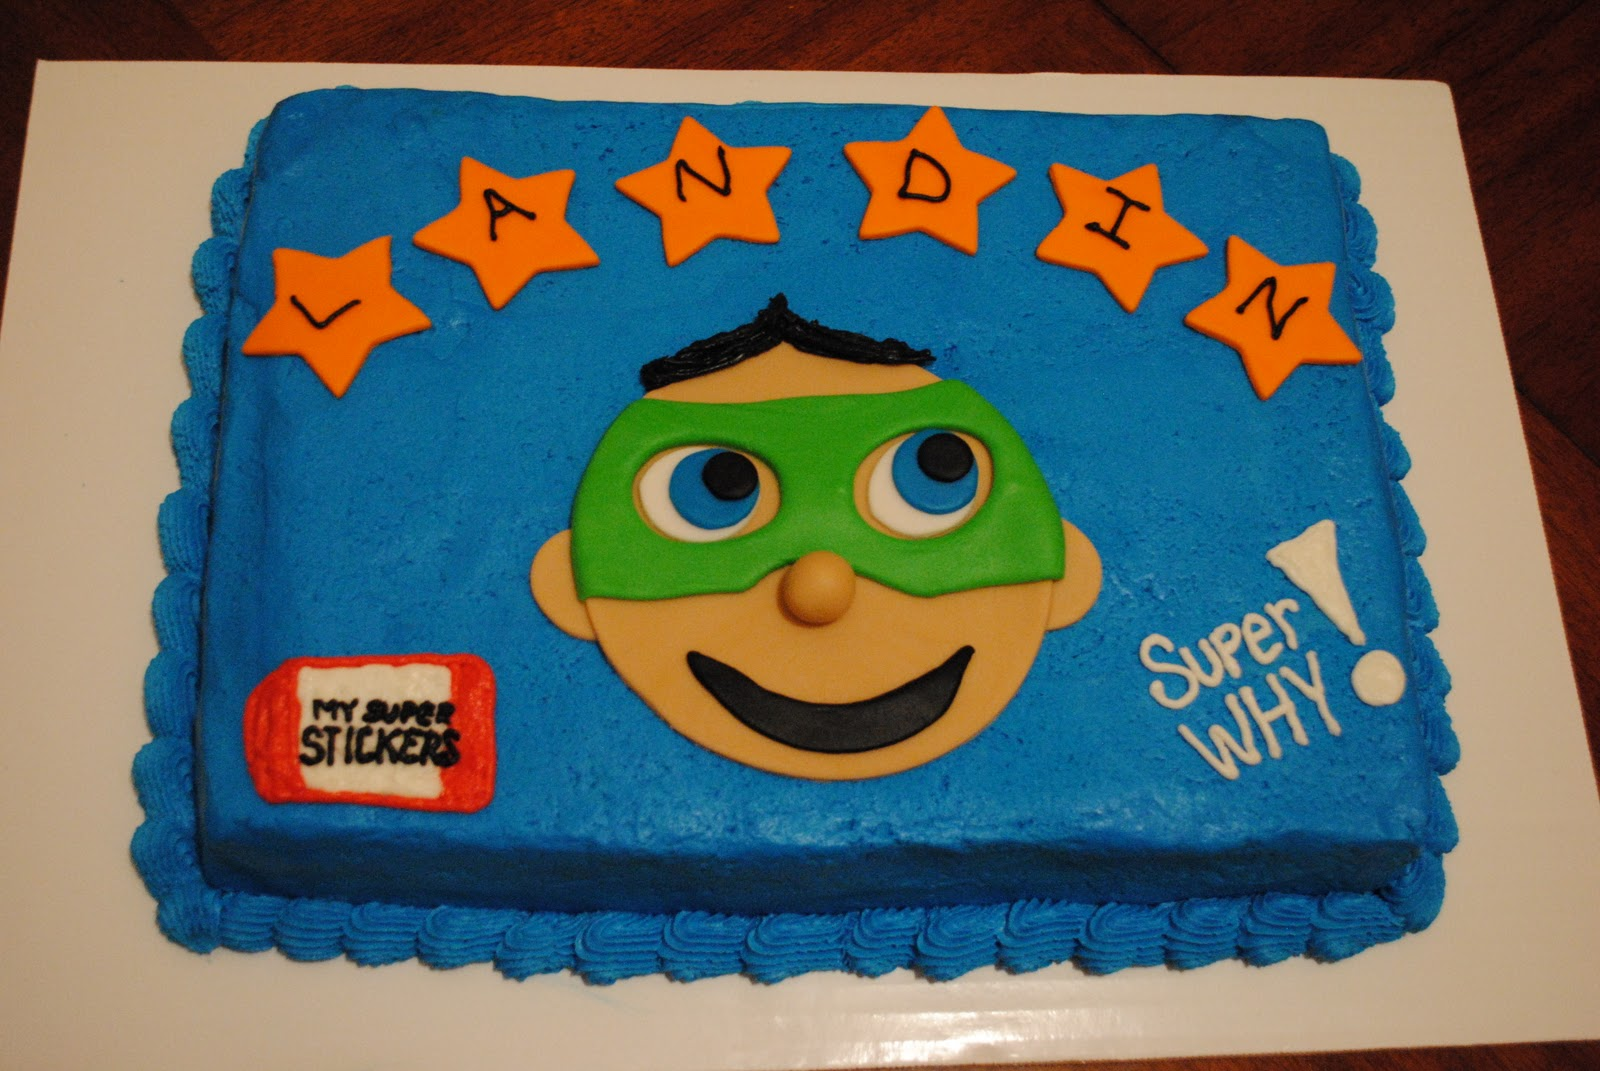 Maureens Cakes More Smurf Cupcakes Super Why Cake